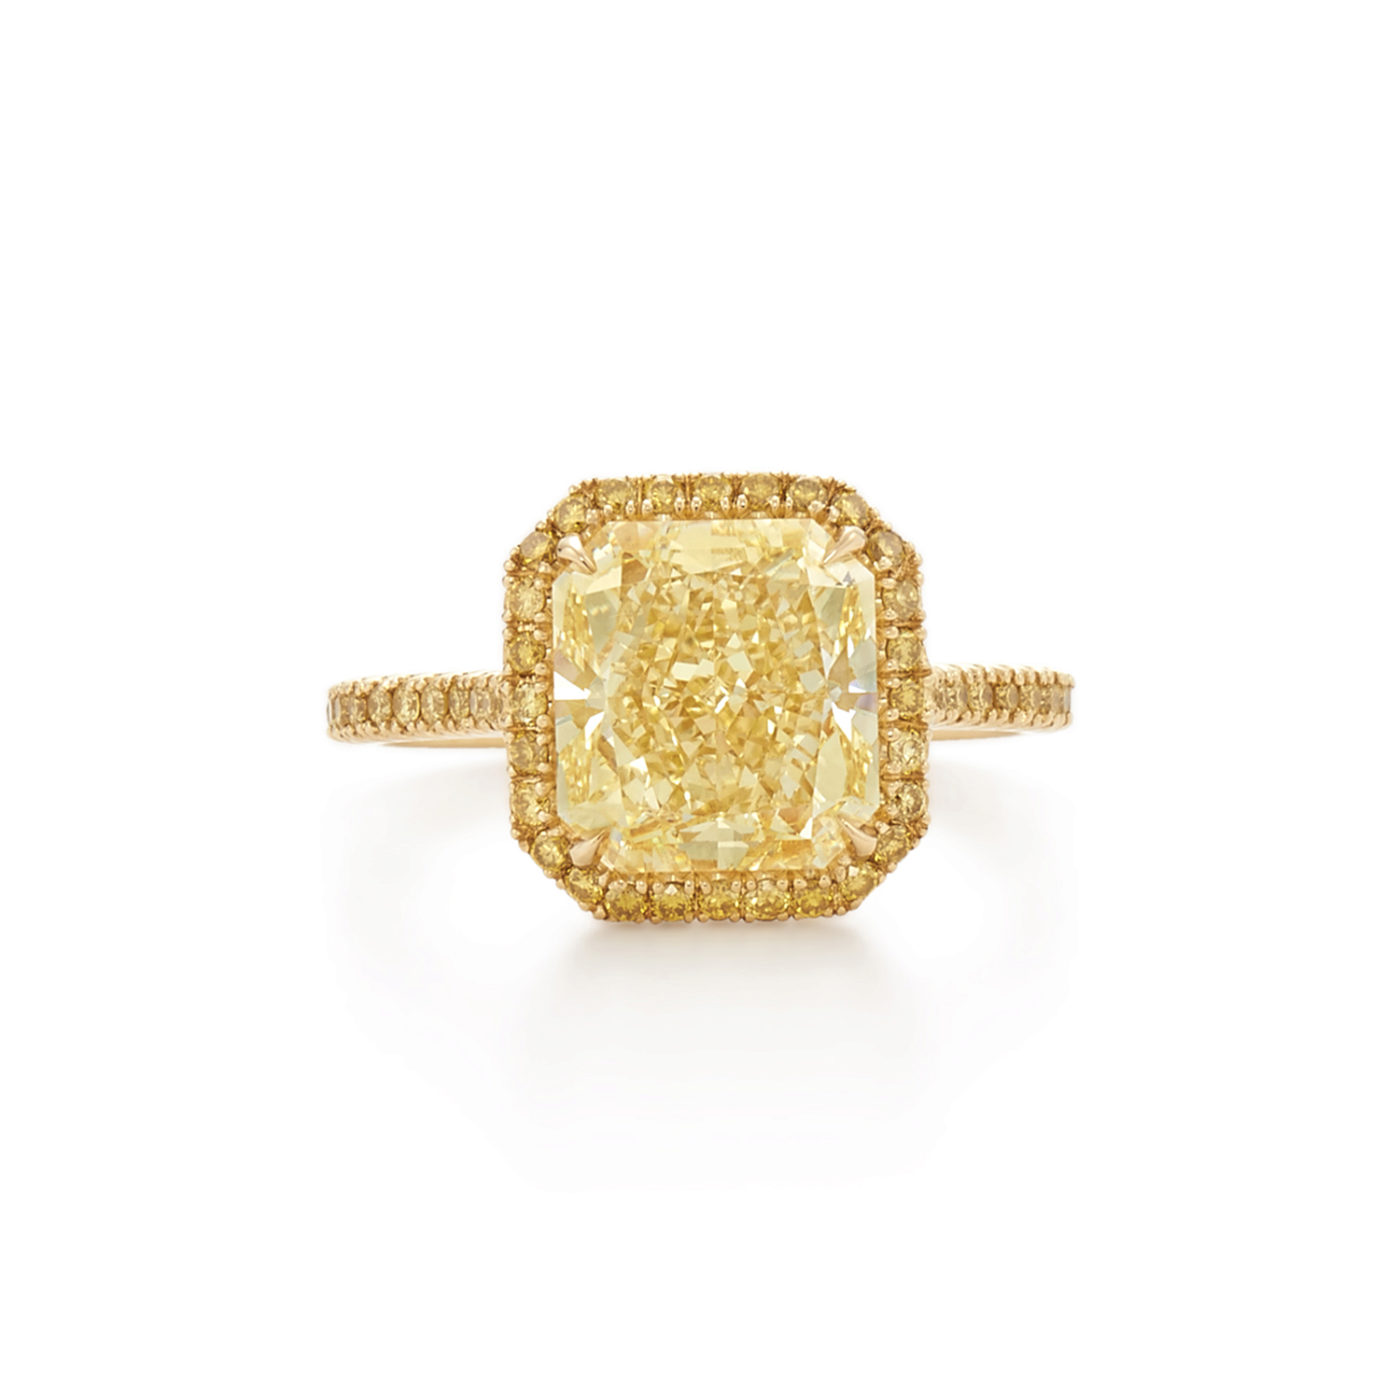 The Kwiat Setting Yellow Radiant Cut Diamond Engagement Ring With A Thin Pave Diamond Halo In